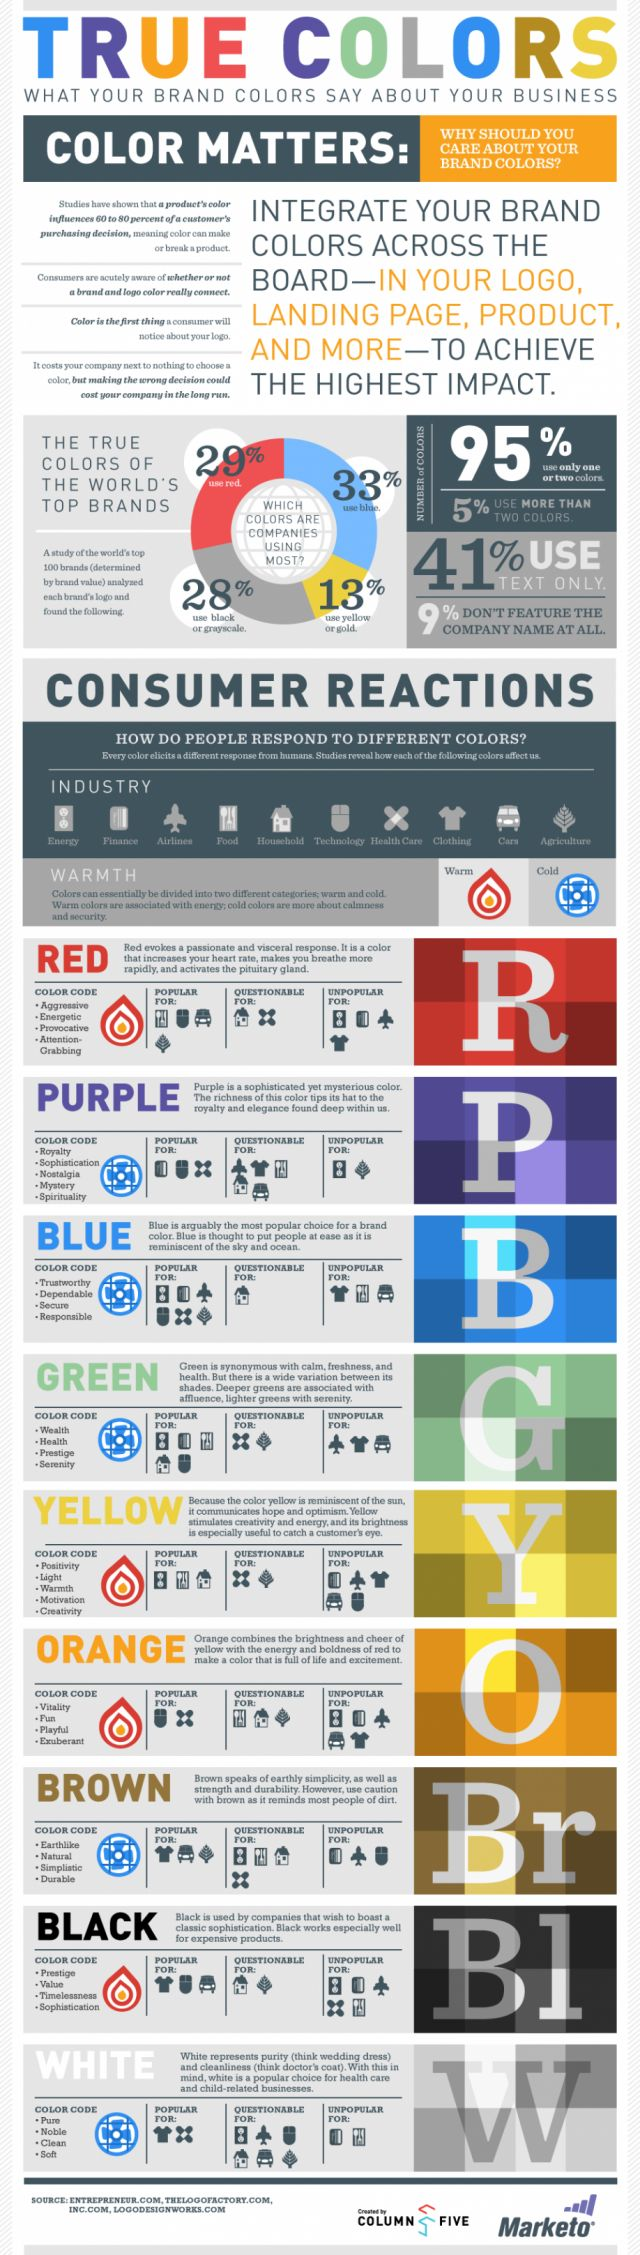 Branded colors and true colors - key for UX/UI design and development #design